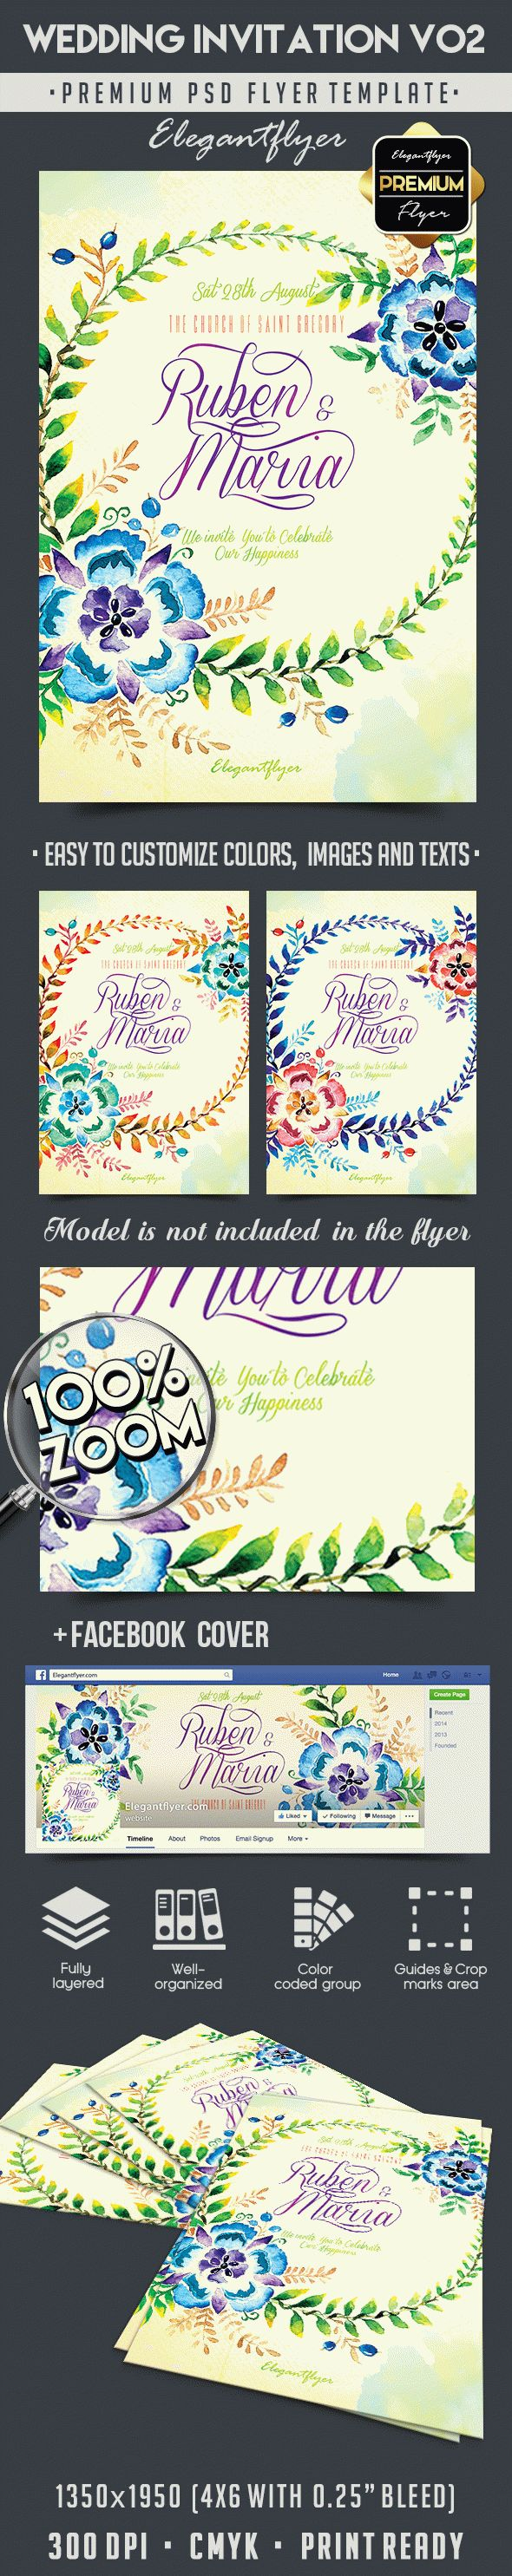 Wedding Invitation V02 – Flyer PSD Template + Facebook Cover